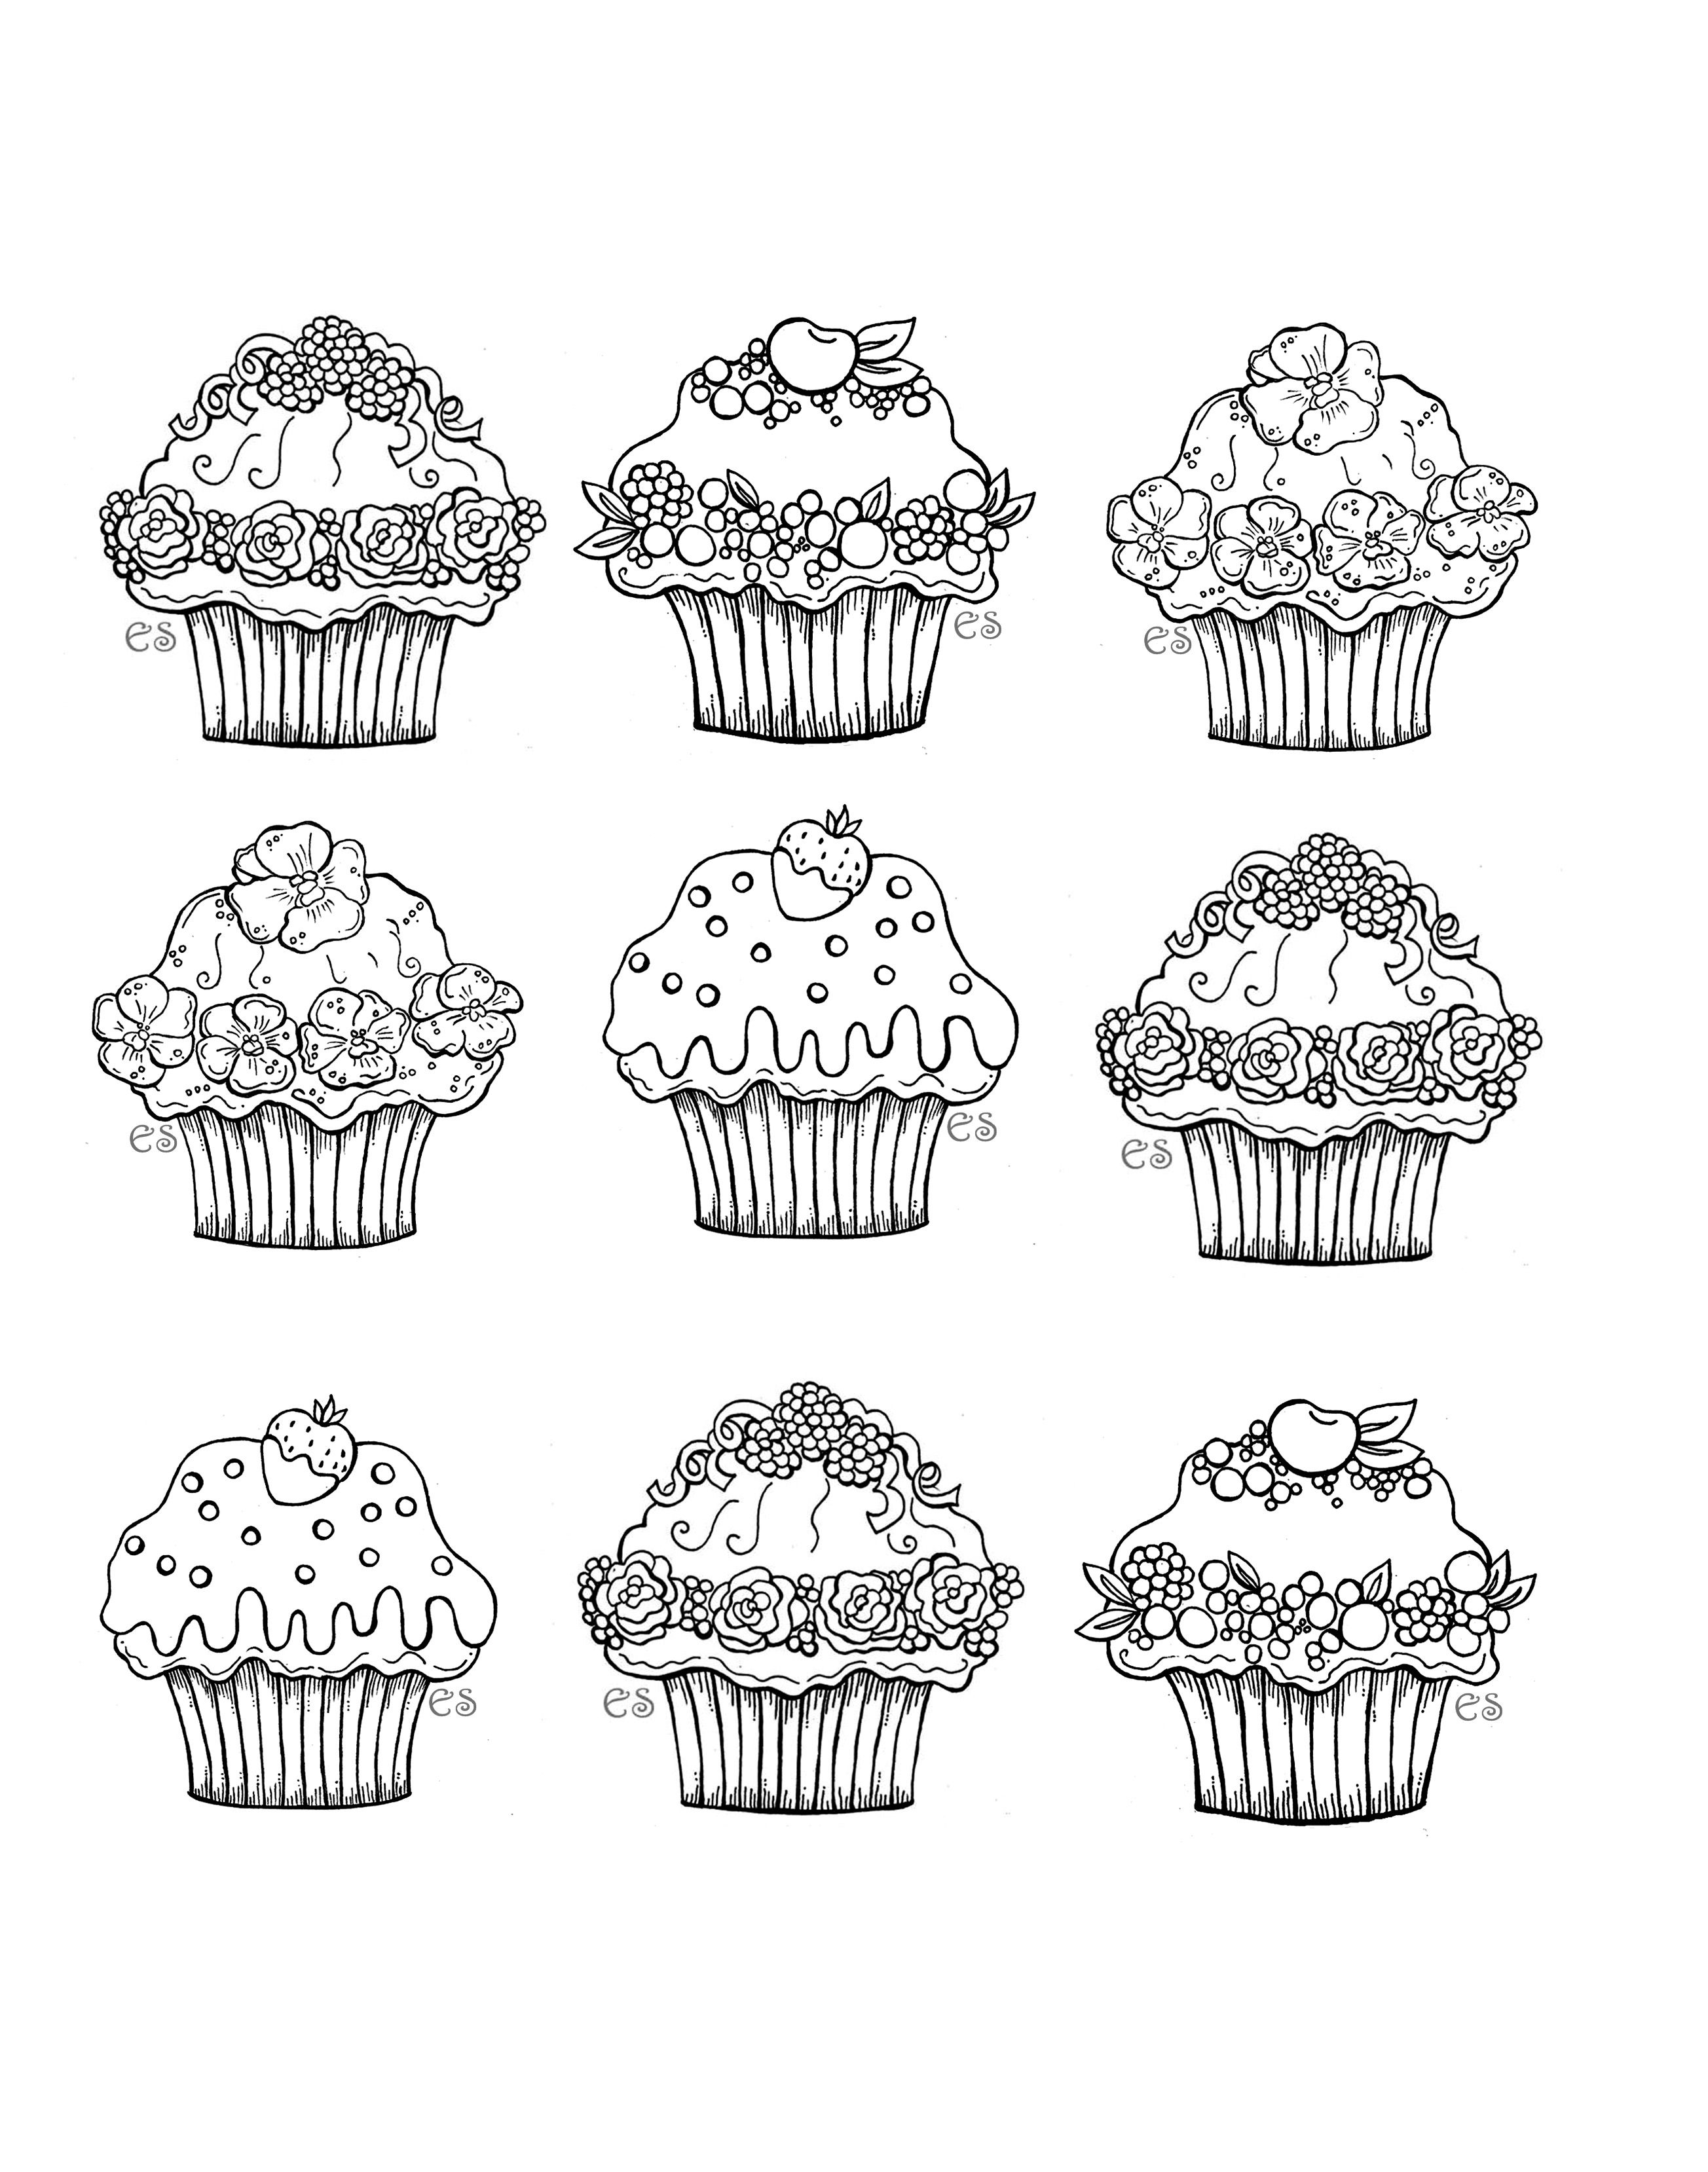 Six Cute Cupcakes Cupcakes And Cakes Coloring Pages For Adults